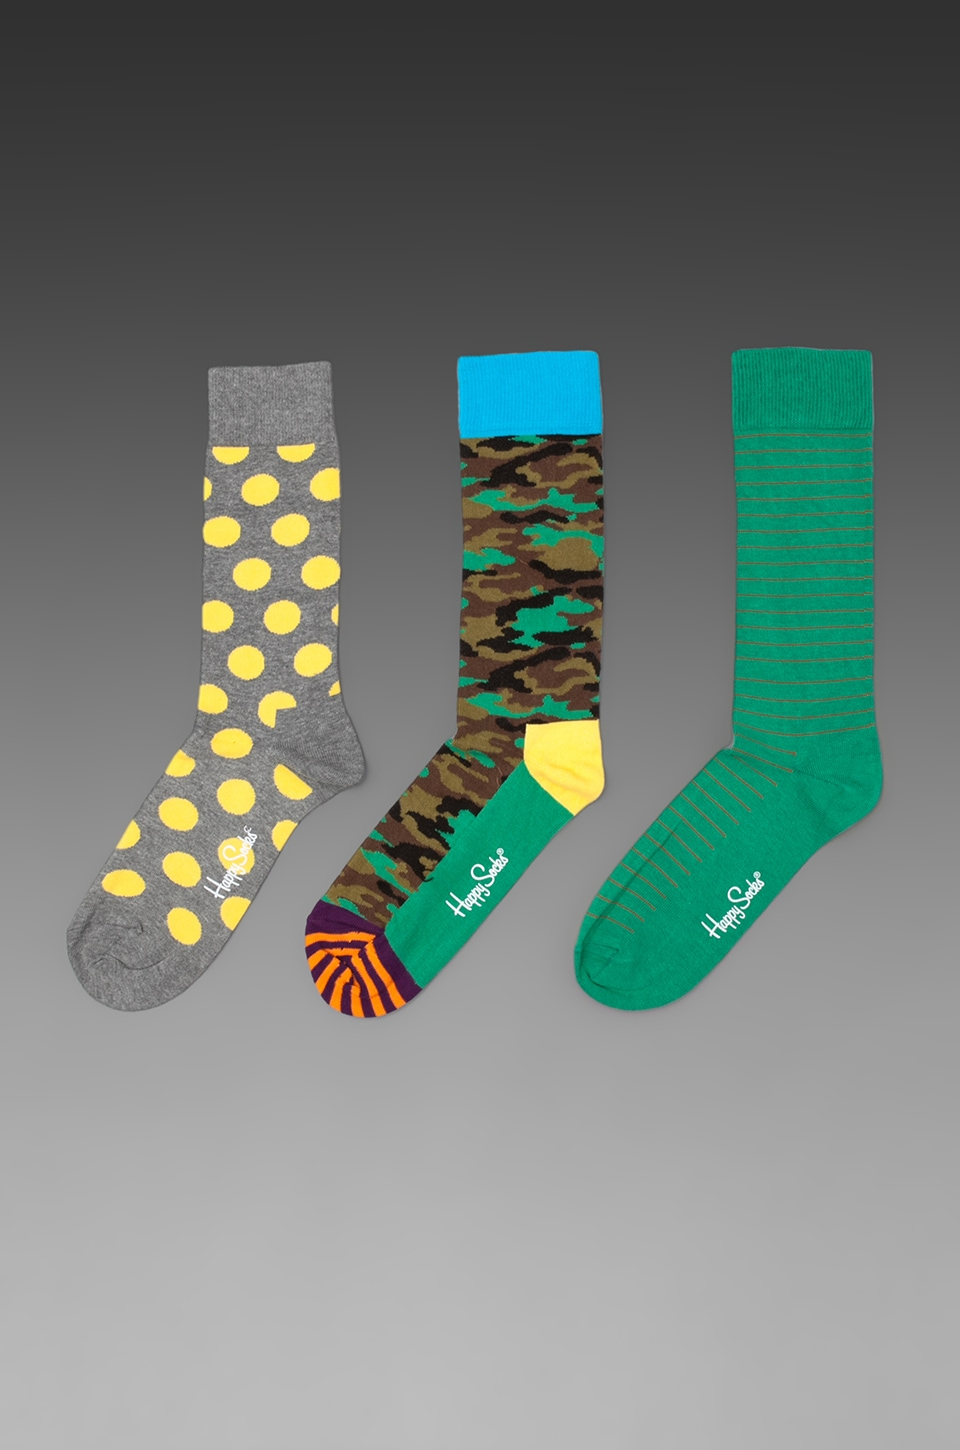 Happy Socks in Big Dot/ Camouflage/ Thin Stripe